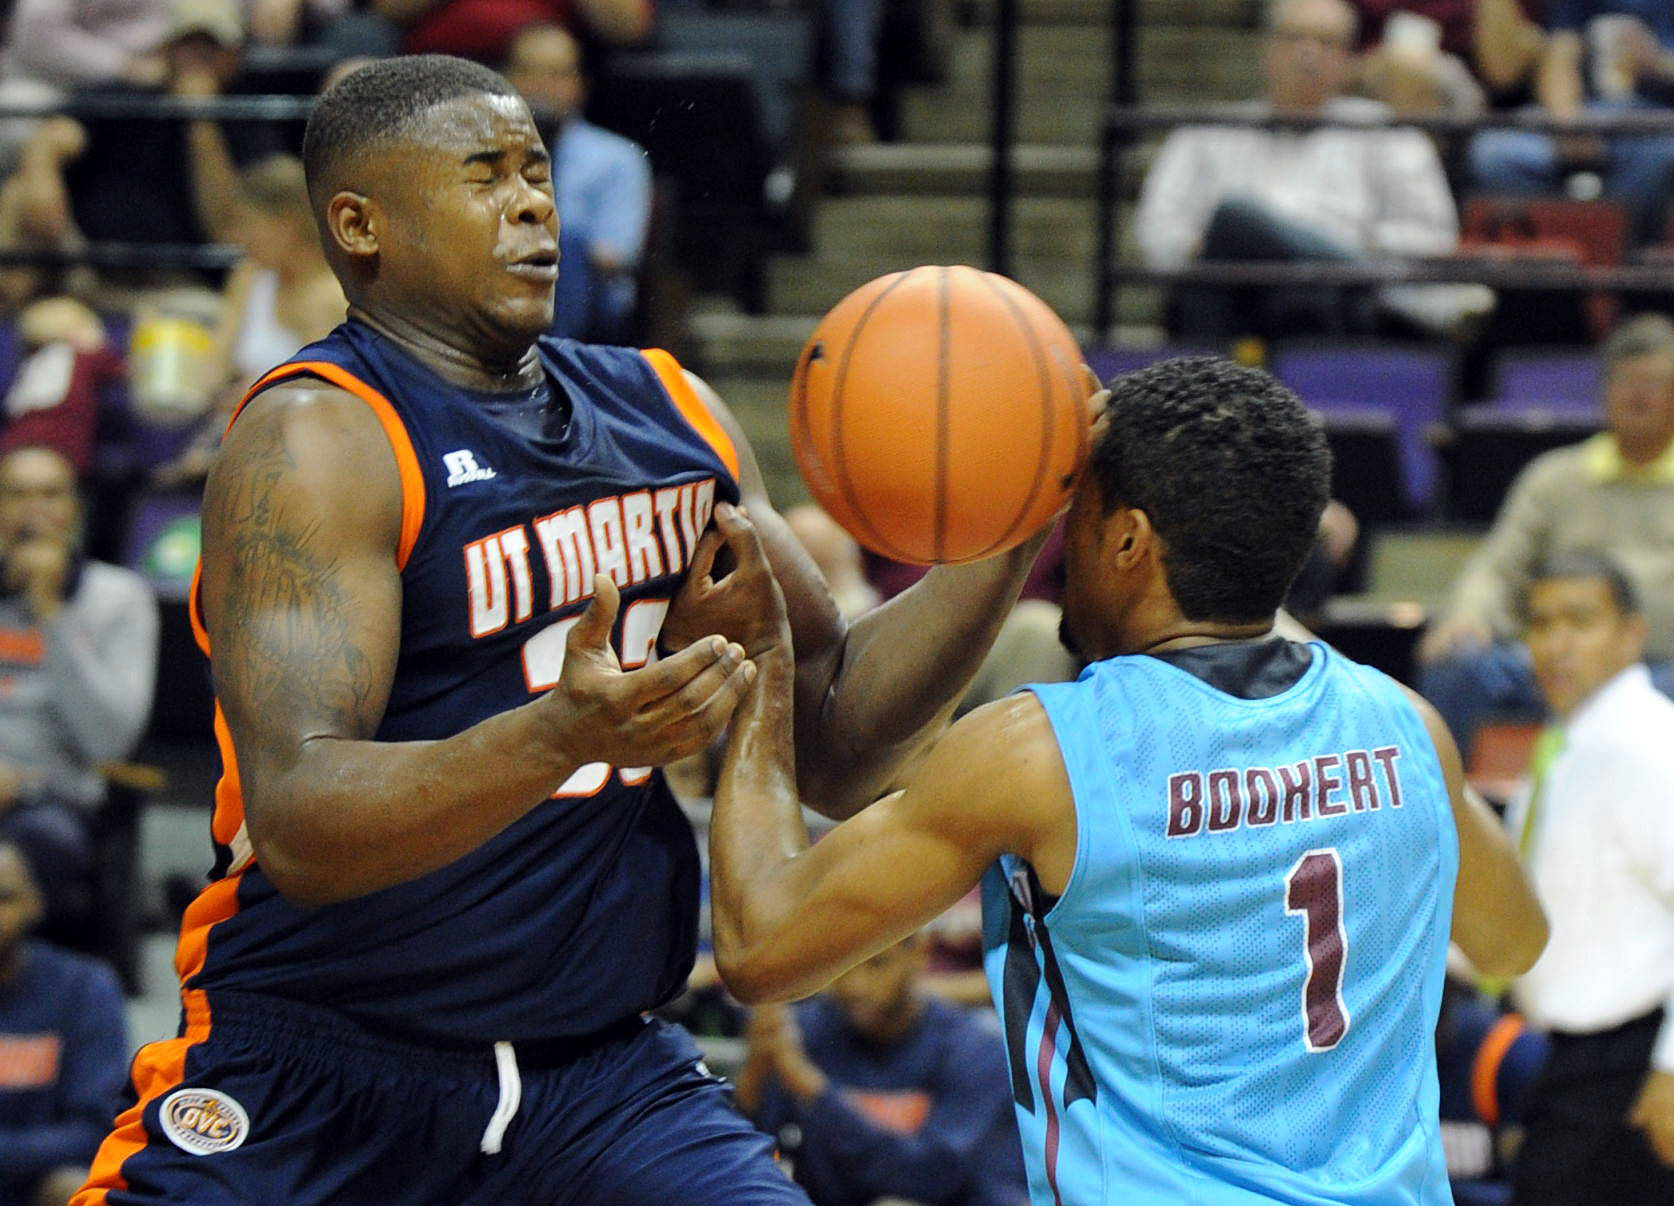 Devon Bookert (1) fights for a loose ball against UT Martin Skyhawks forward Myles Taylor (33). Mandatory Credit: Melina Vastola-USA TODAY Sports